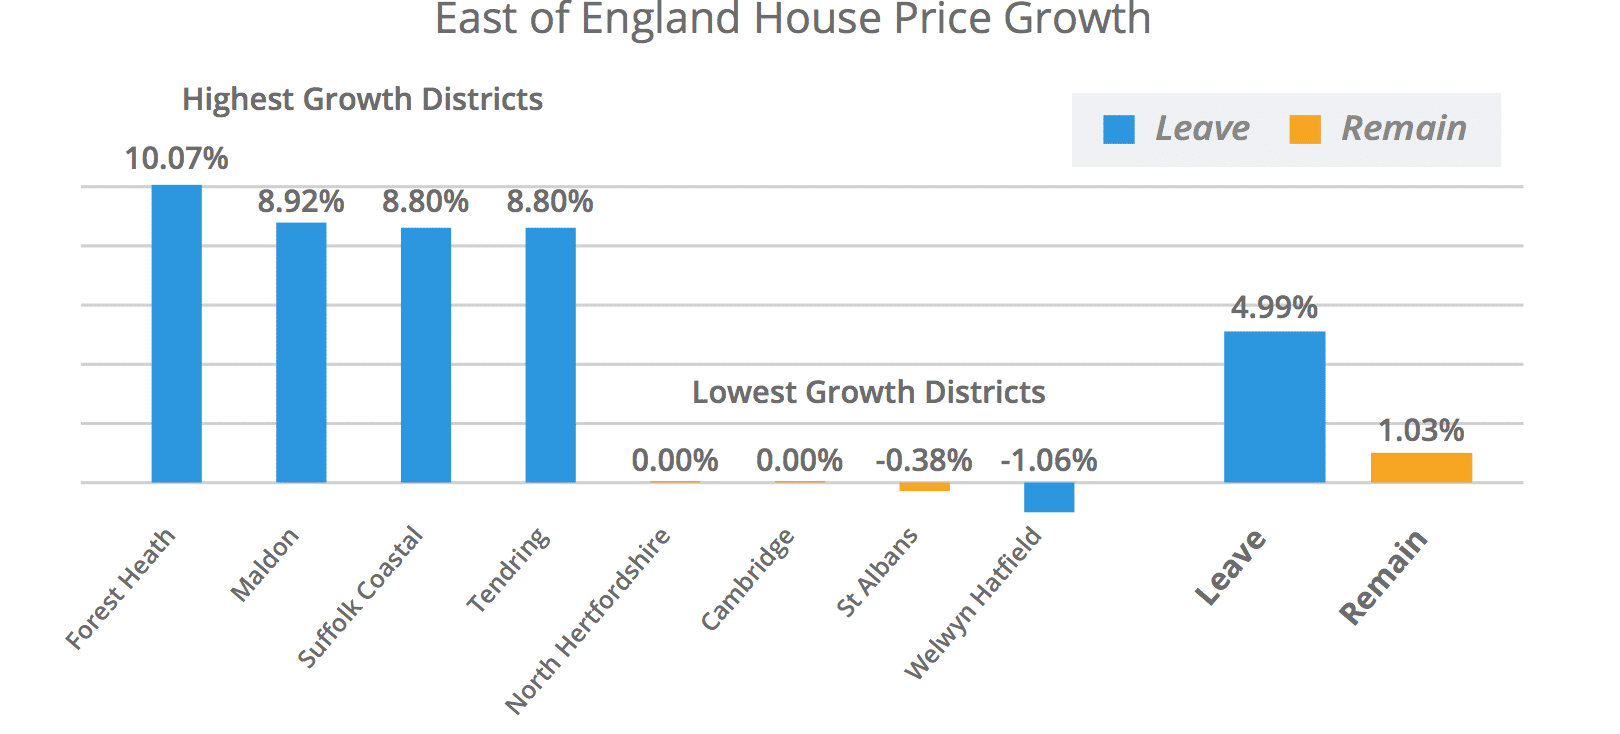 East of England House Price